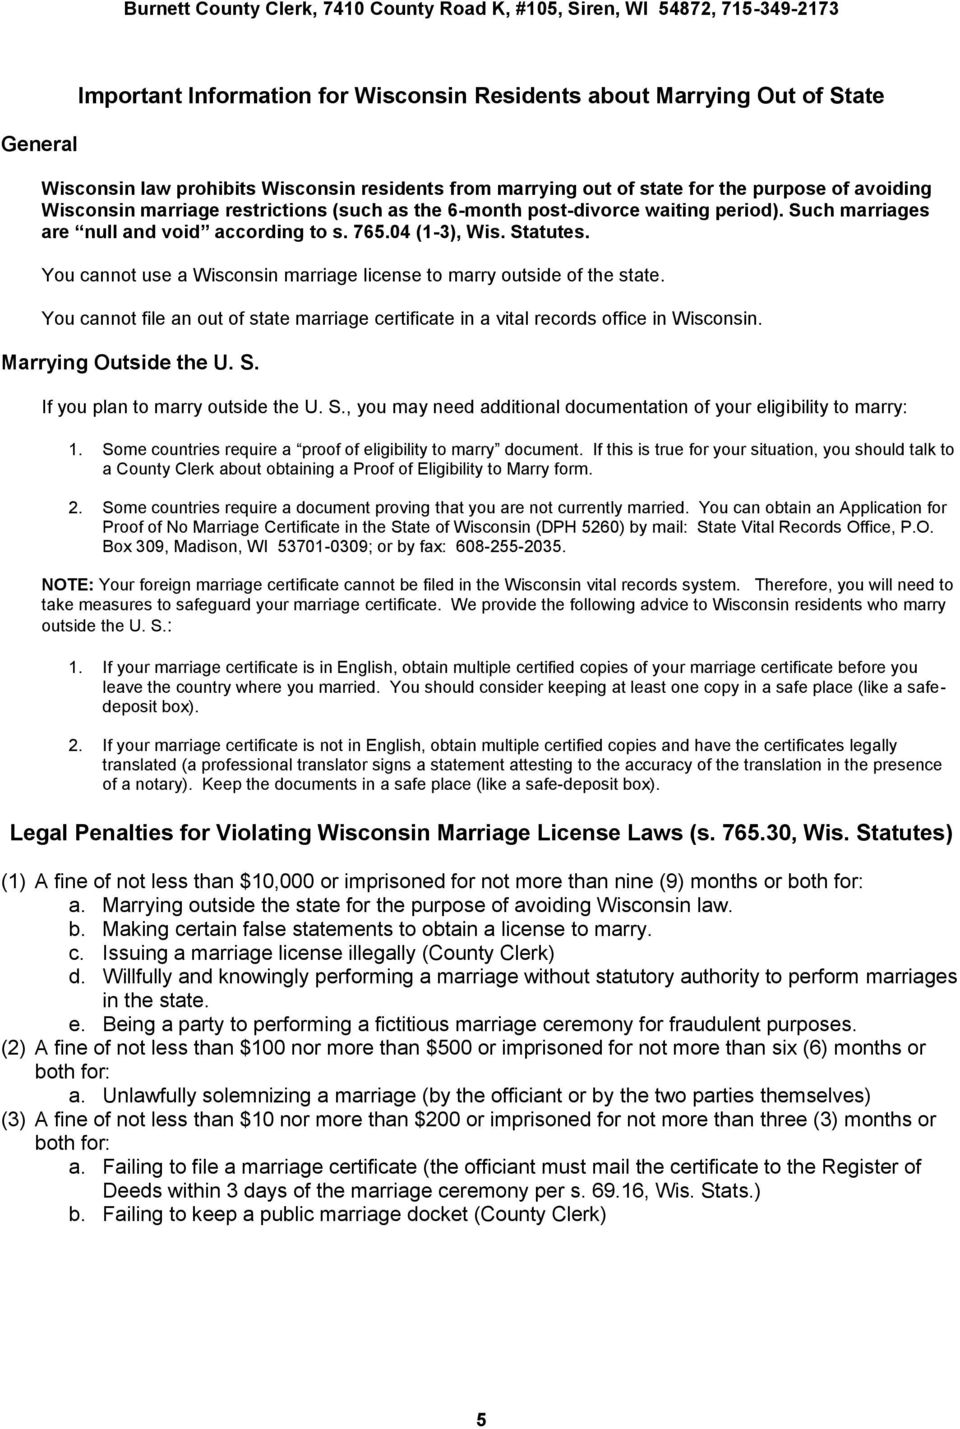 Information For Marriage Applicants And Officiants Pdf